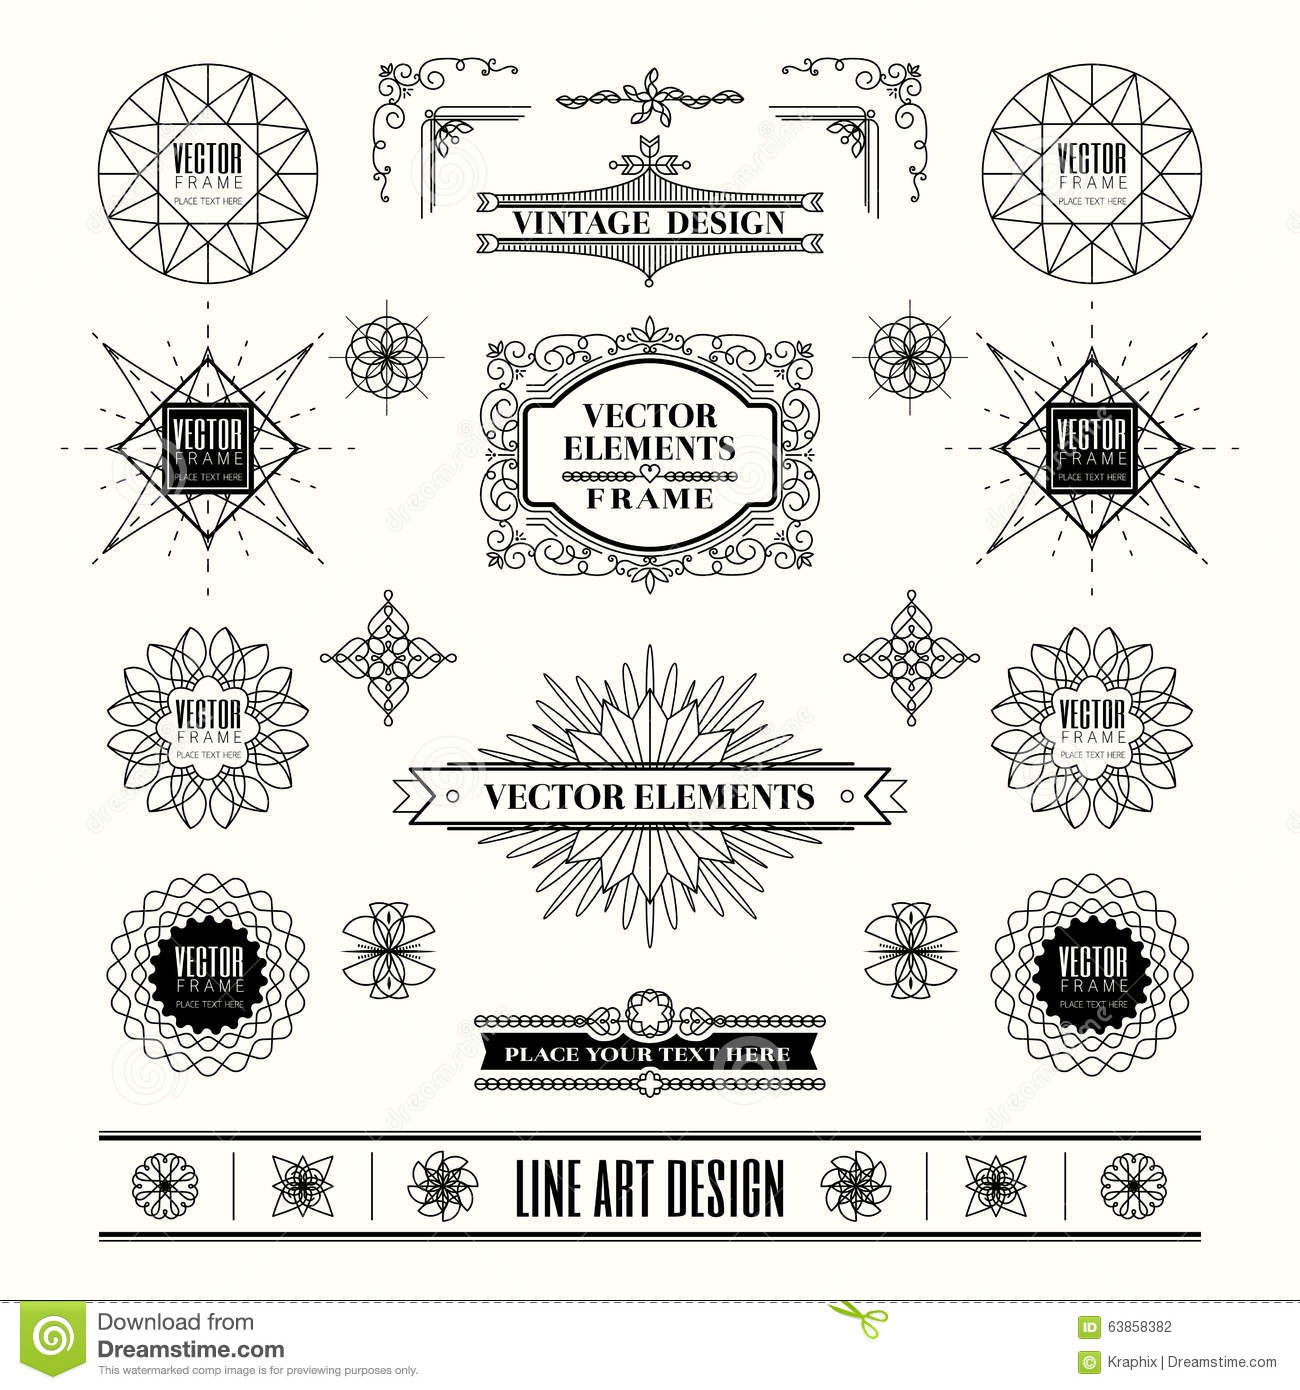 Drawing Lines Shapes Or Text On Bitmaps : Set of linear line art deco retro vintage design frame